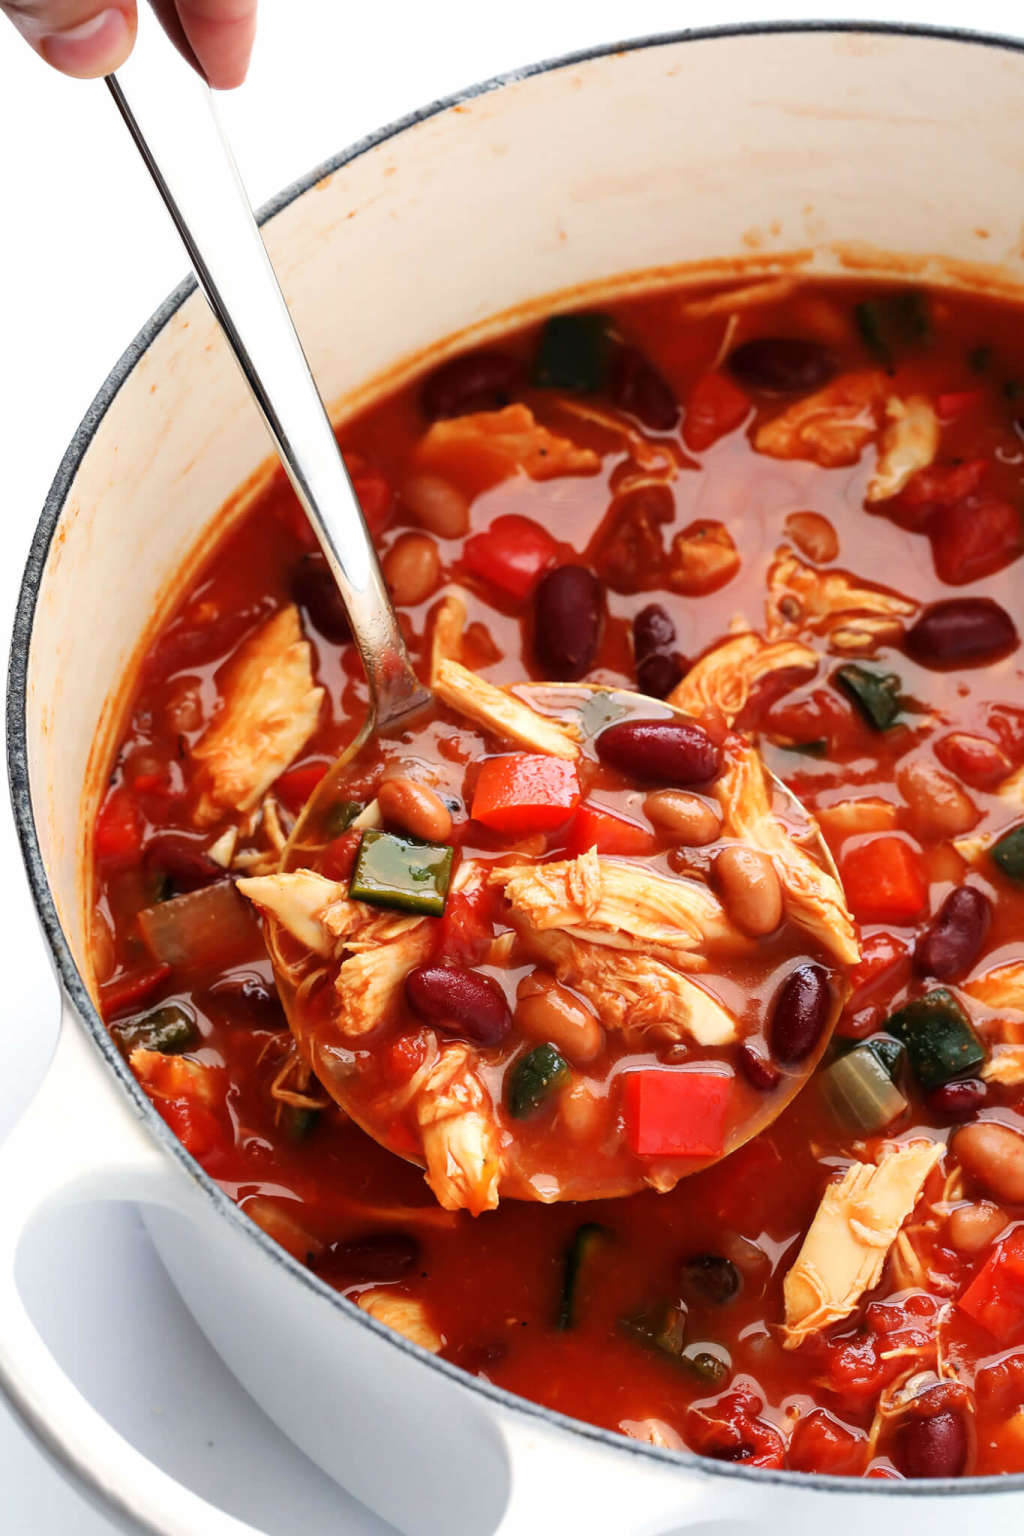 This Easy Chicken Chili Comes Together in 20 Minutes